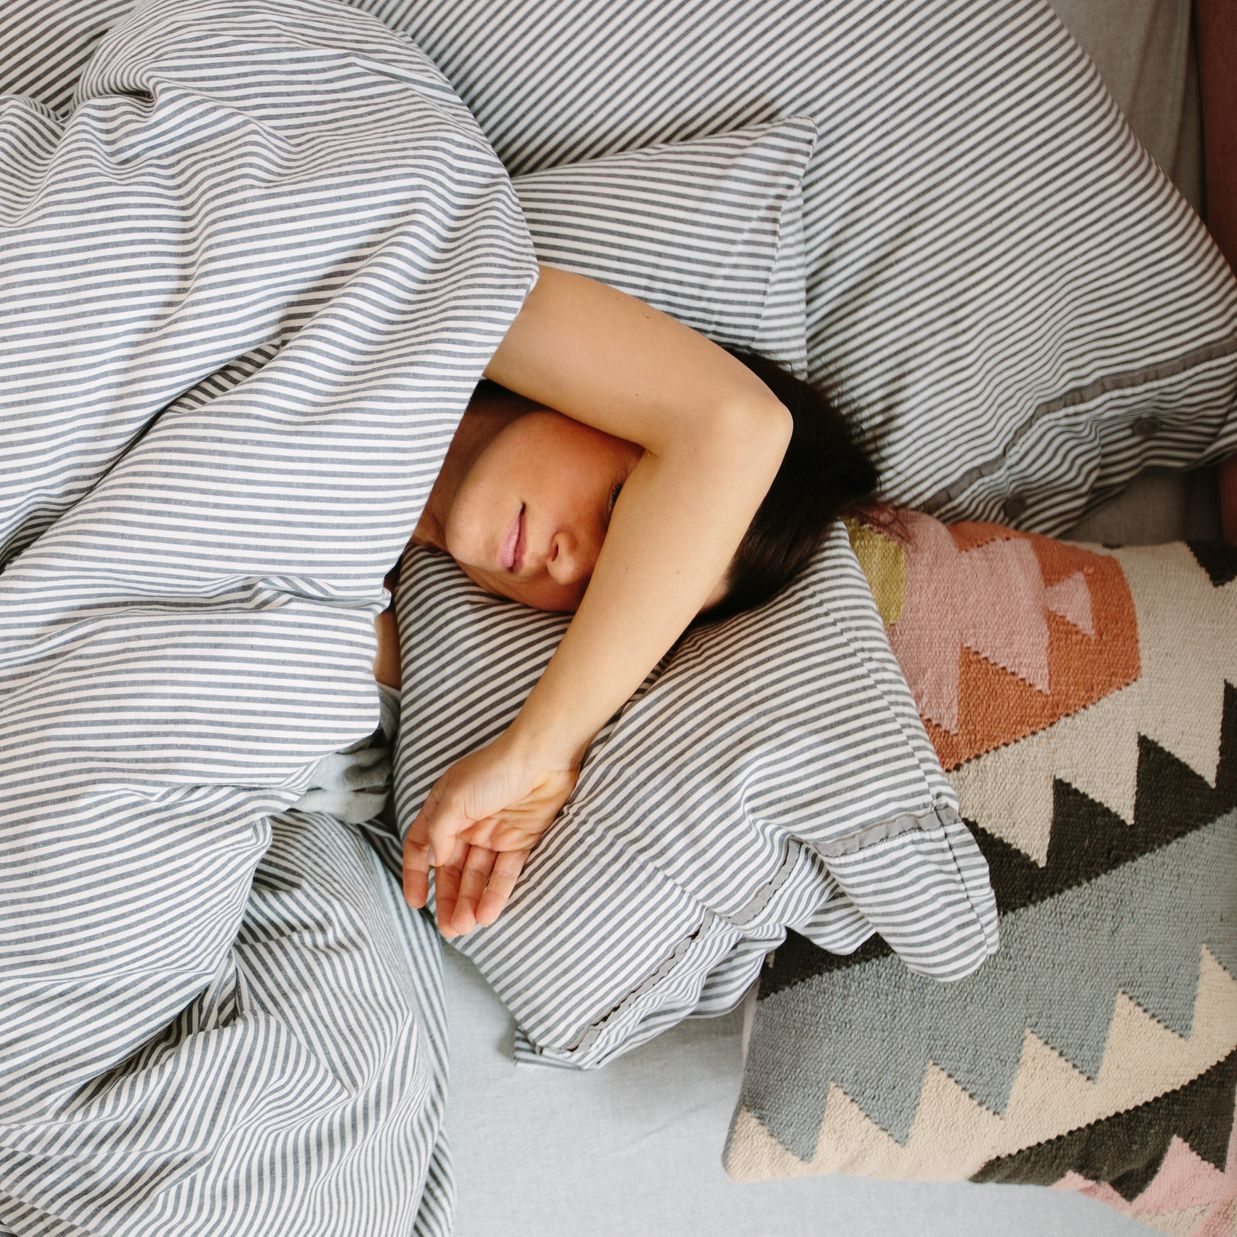 Feeling Tired All The Time? - Why Chronic Fatigue Causes Constant Tiredness